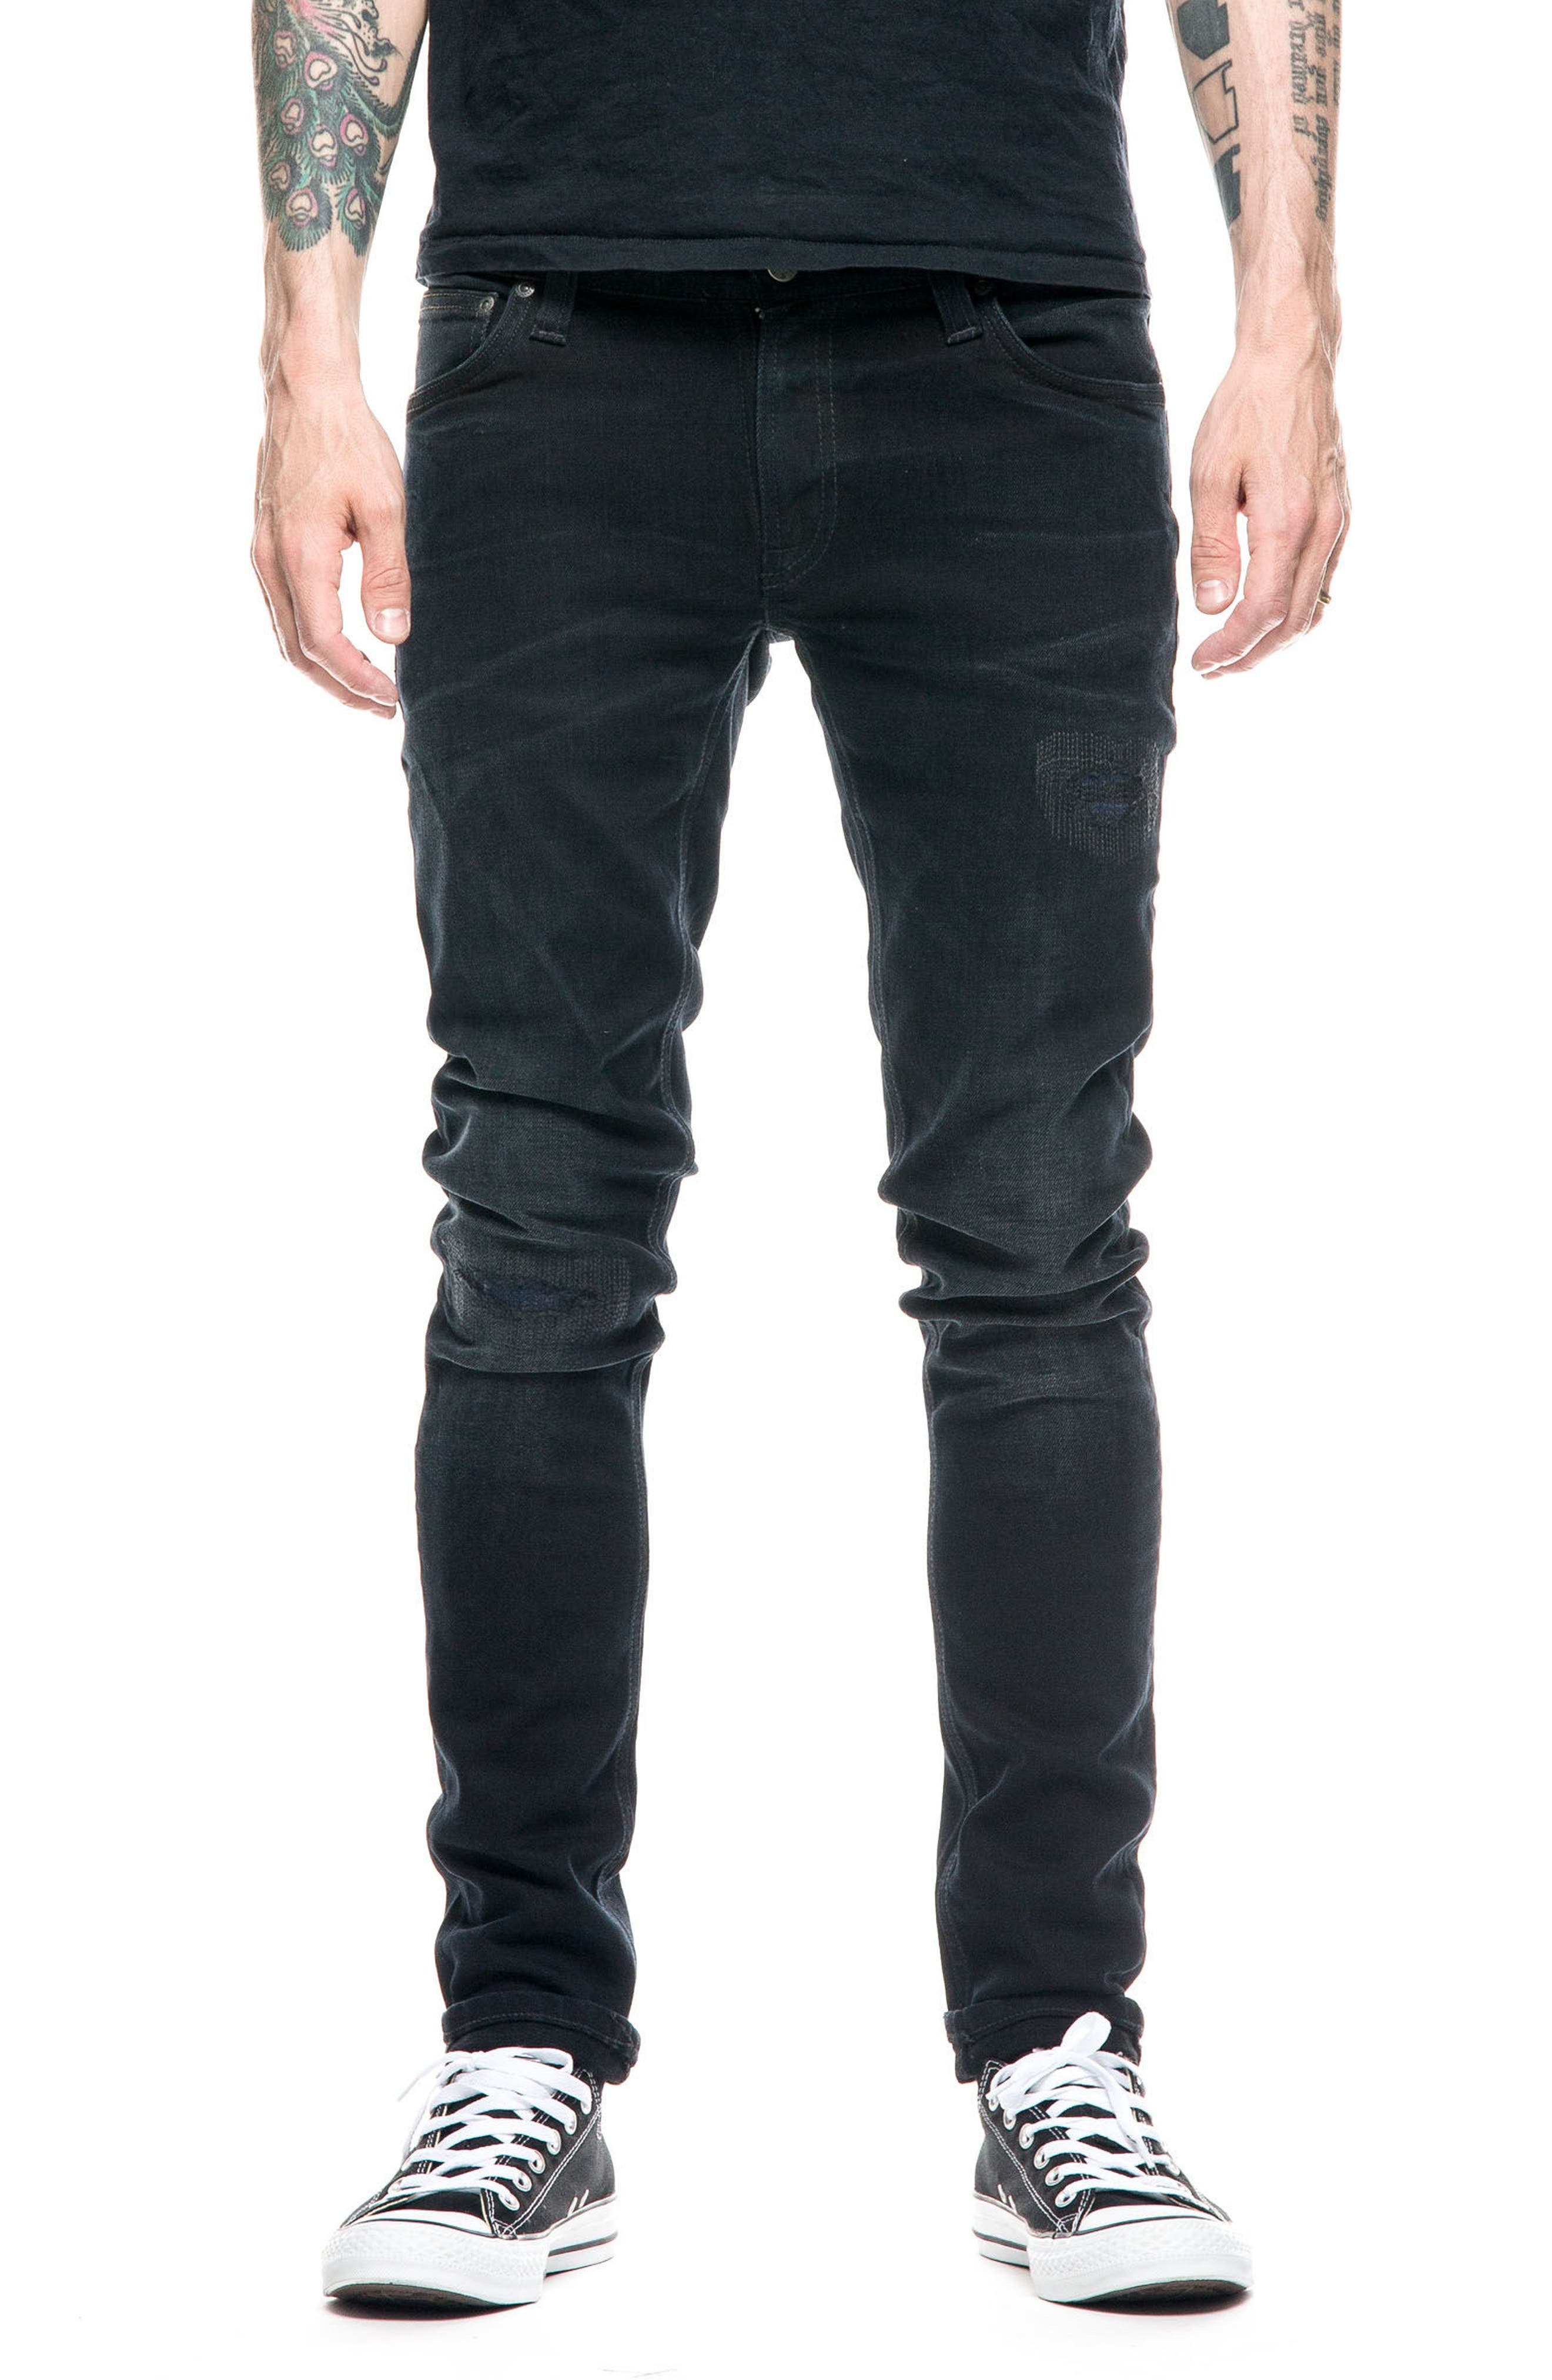 Nudie Jeans Skinny Lin Skinny Fit Jeans (Black Blue Patches)